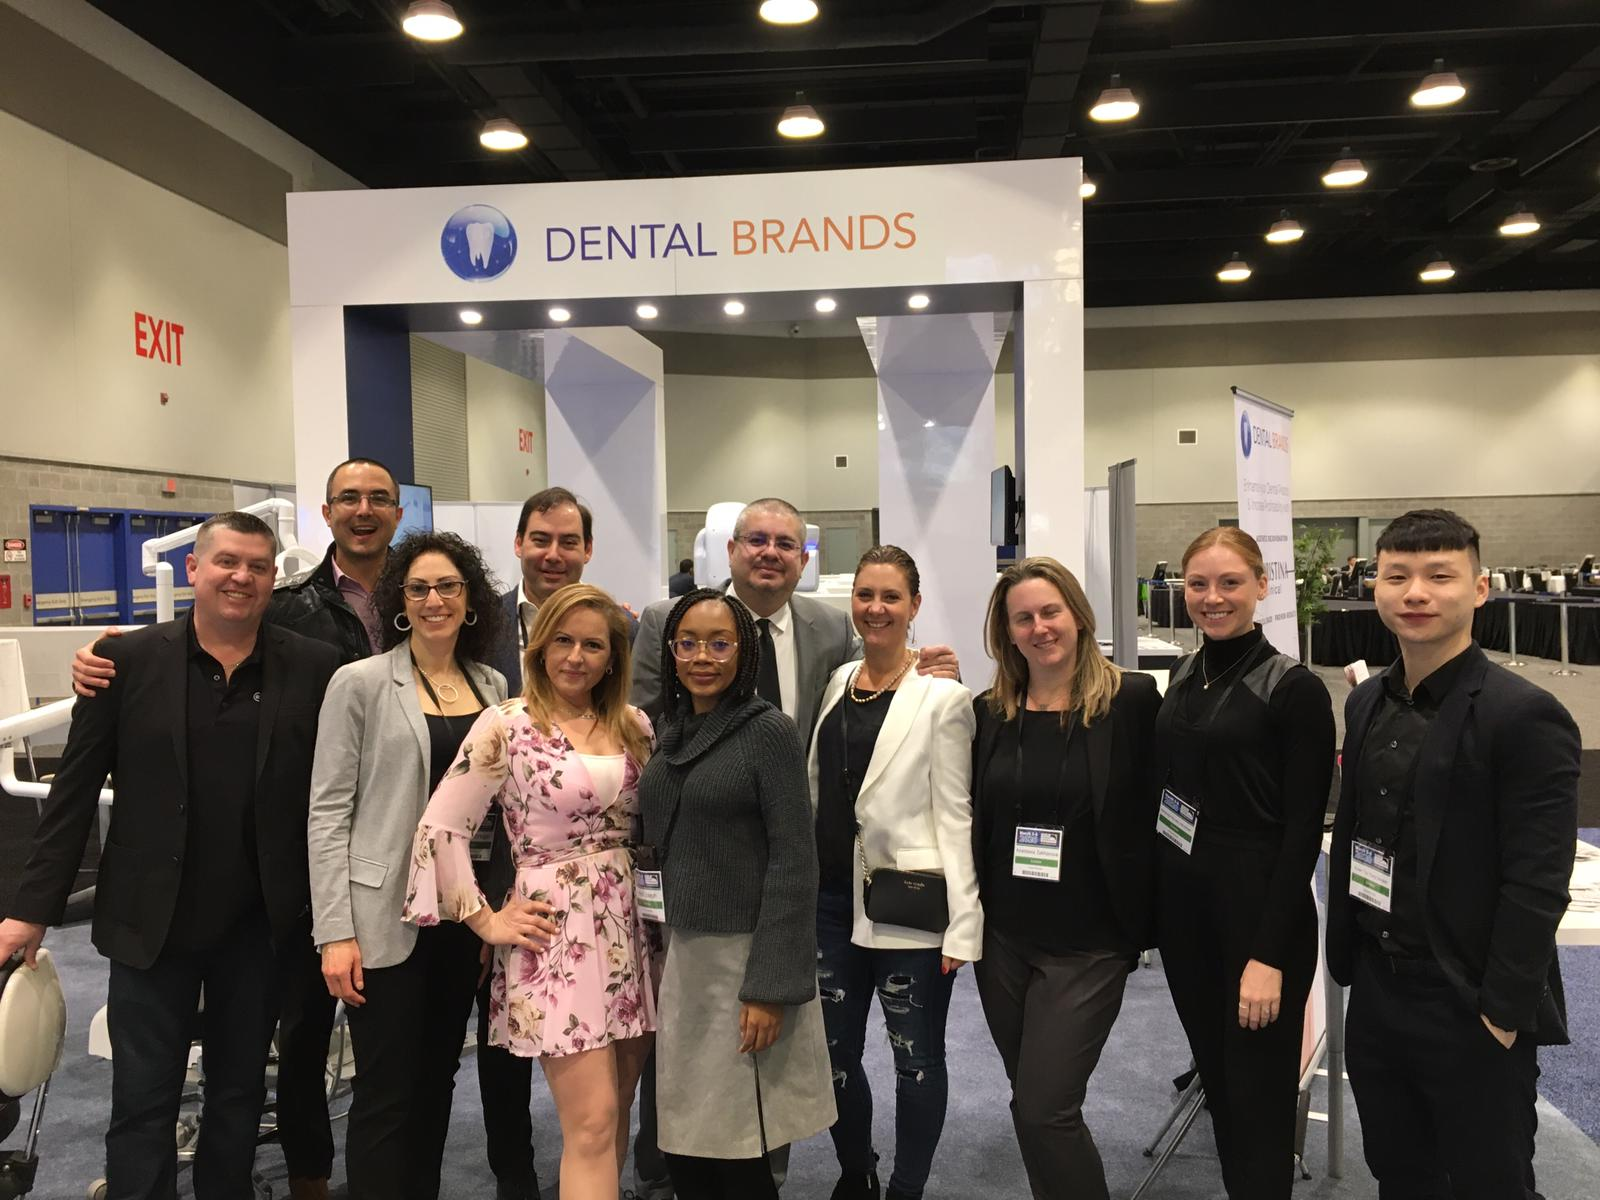 About Dental Brands